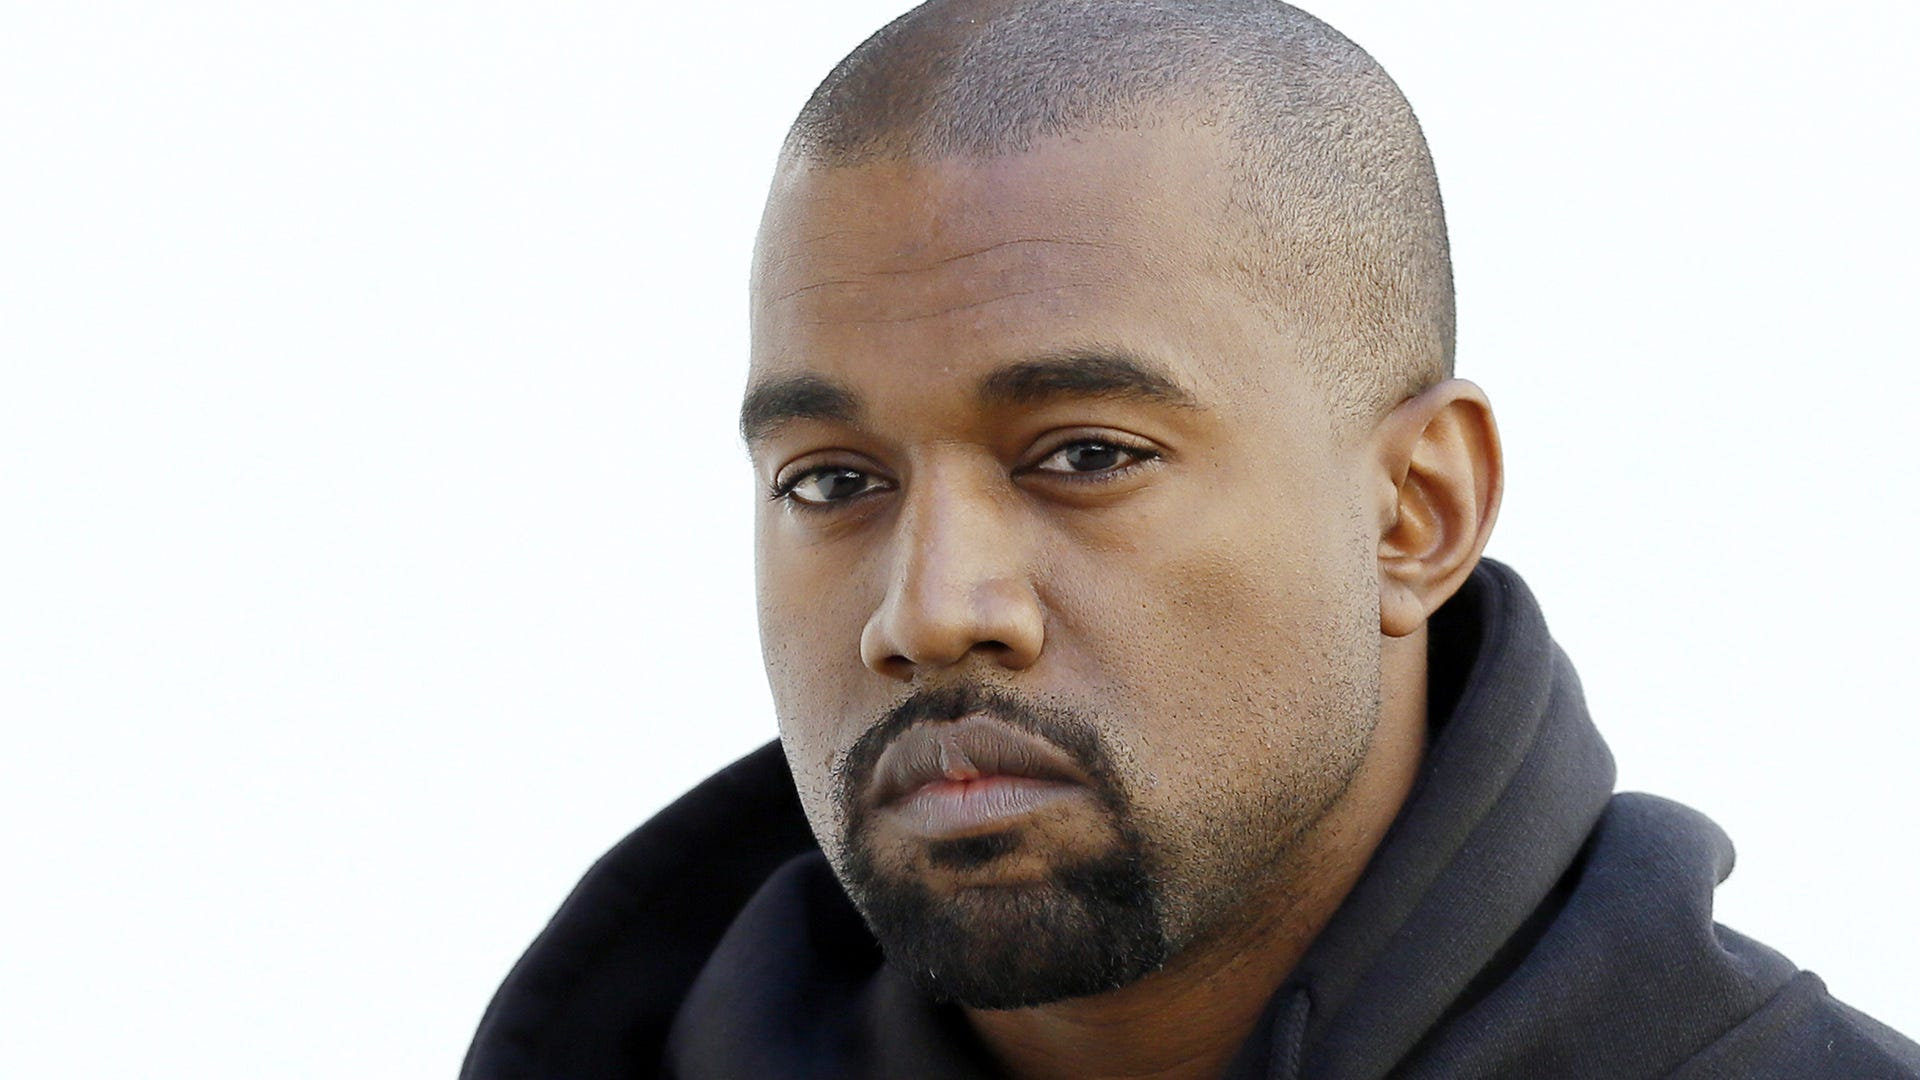 Kanye West leaked Drake's address in the latest chapter of their feud